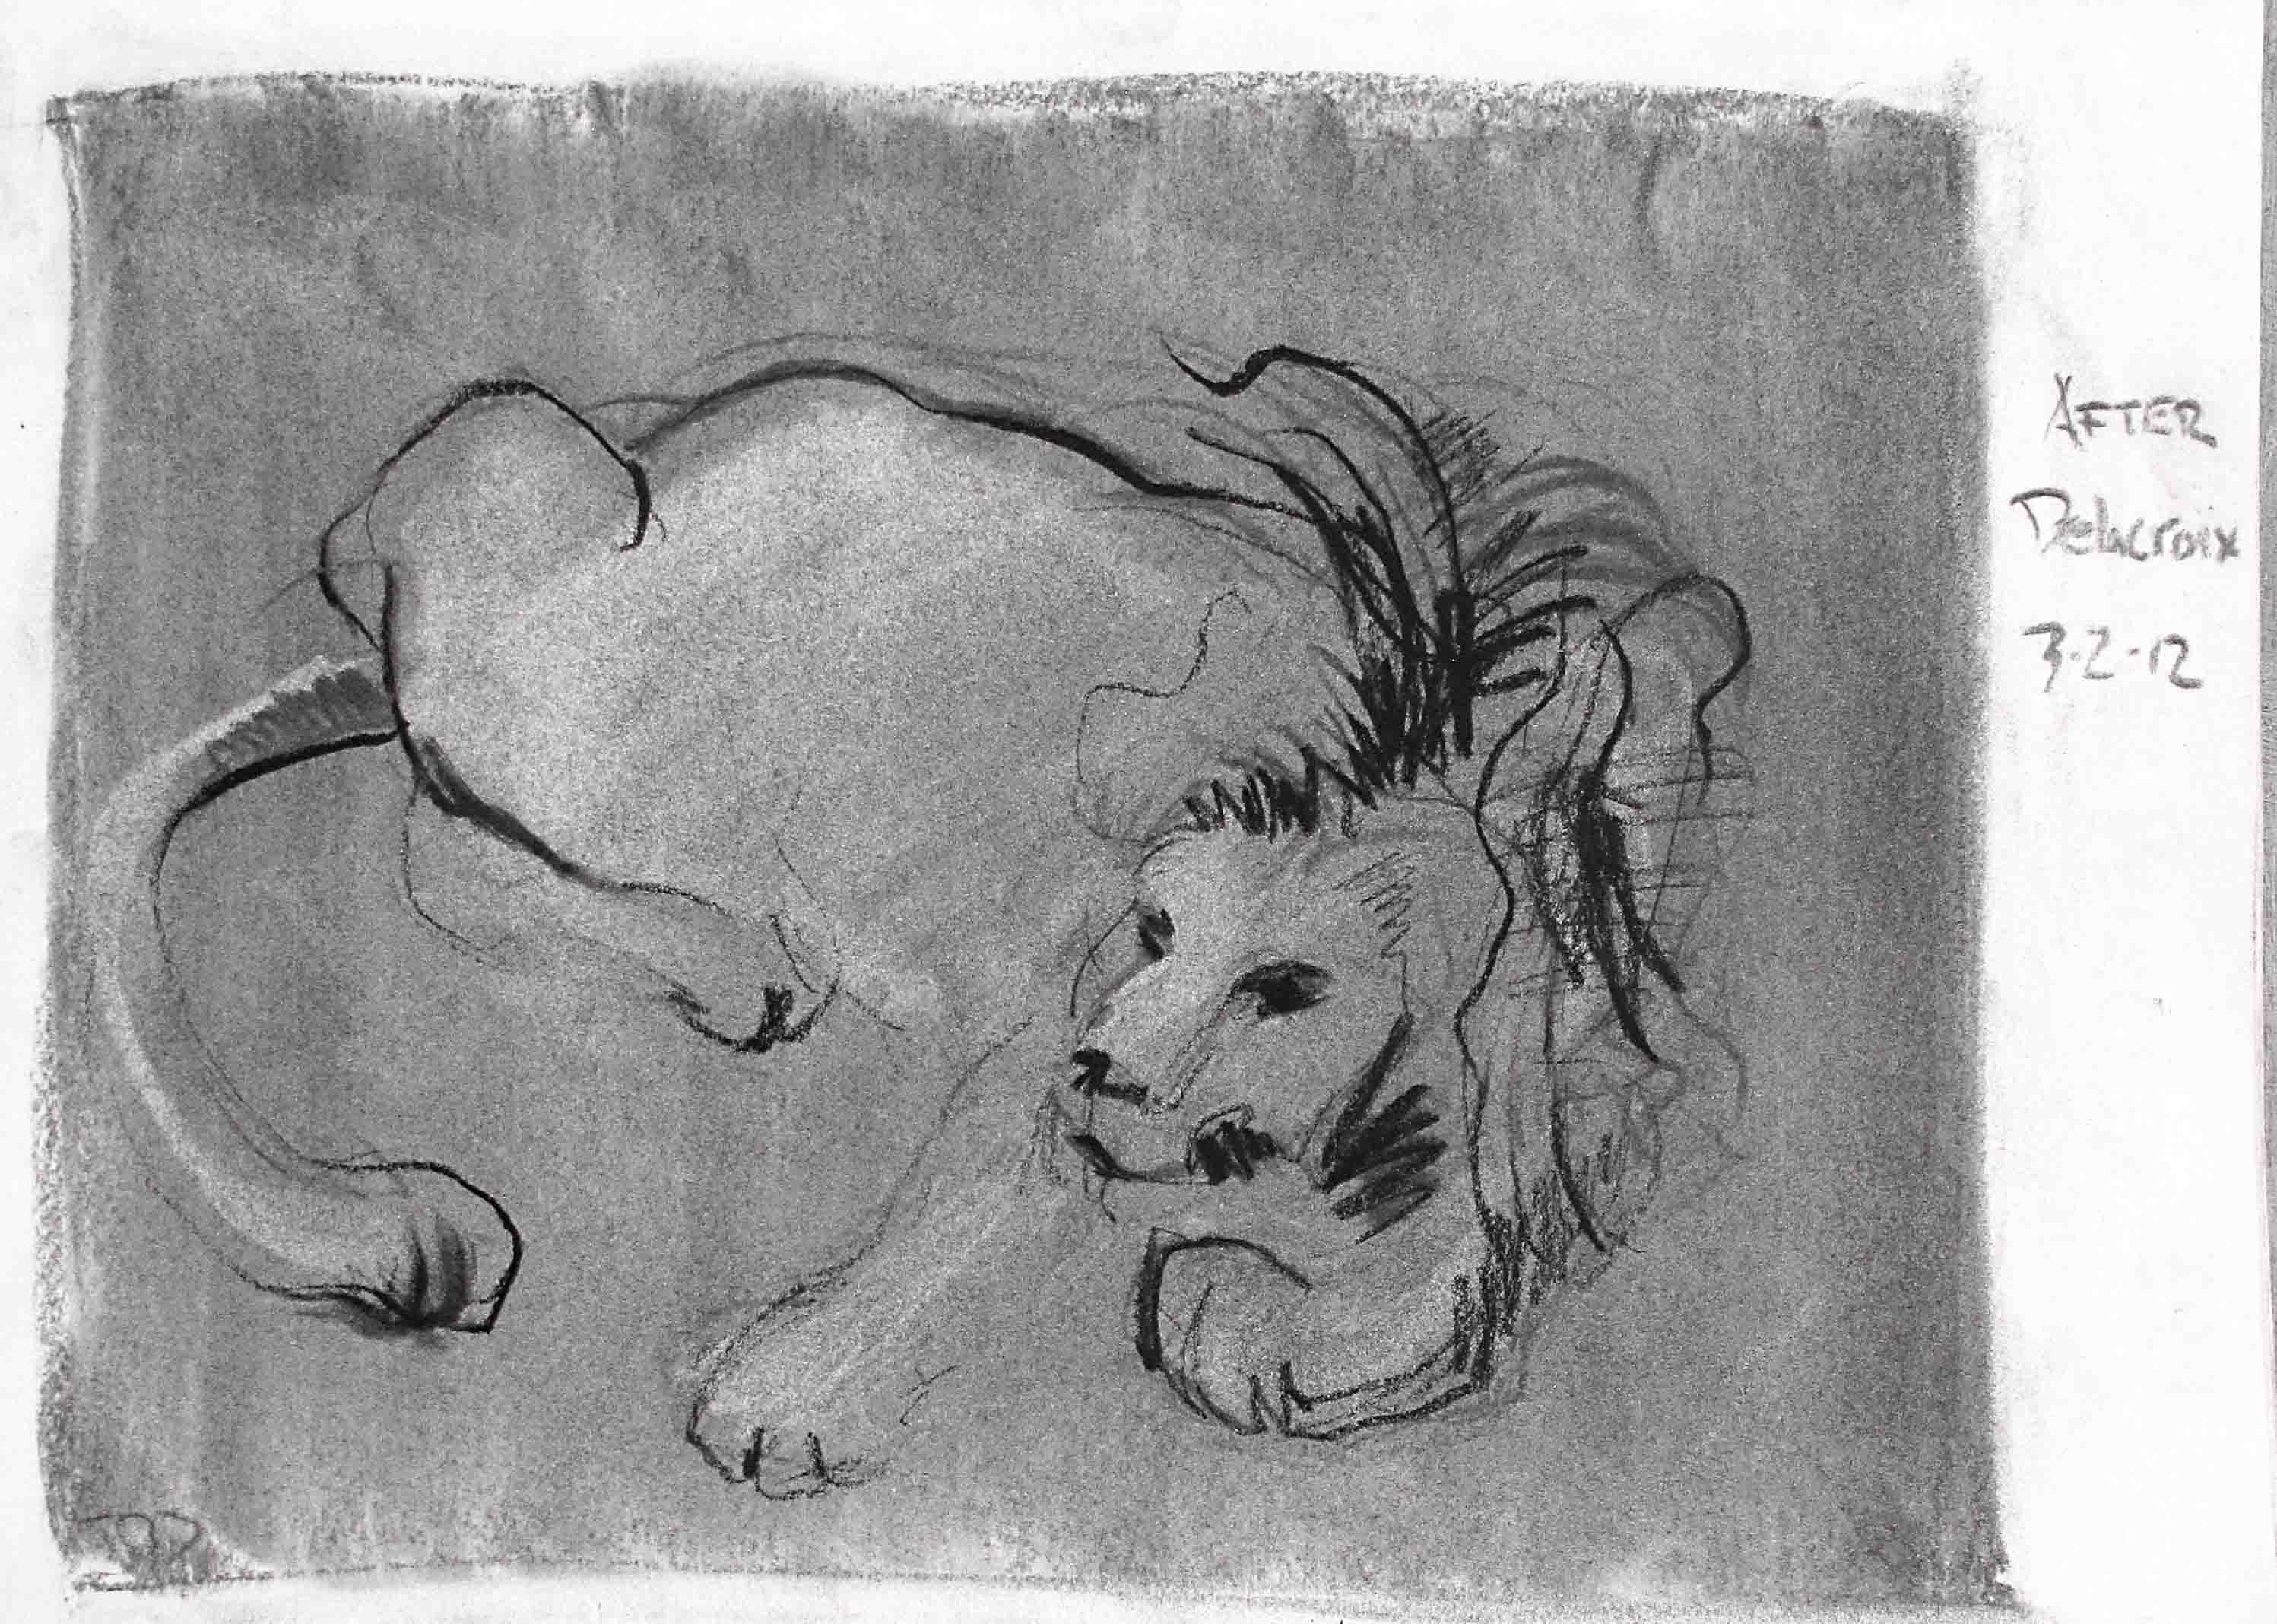 Tim Dayhuff - drawings - after Delacroix